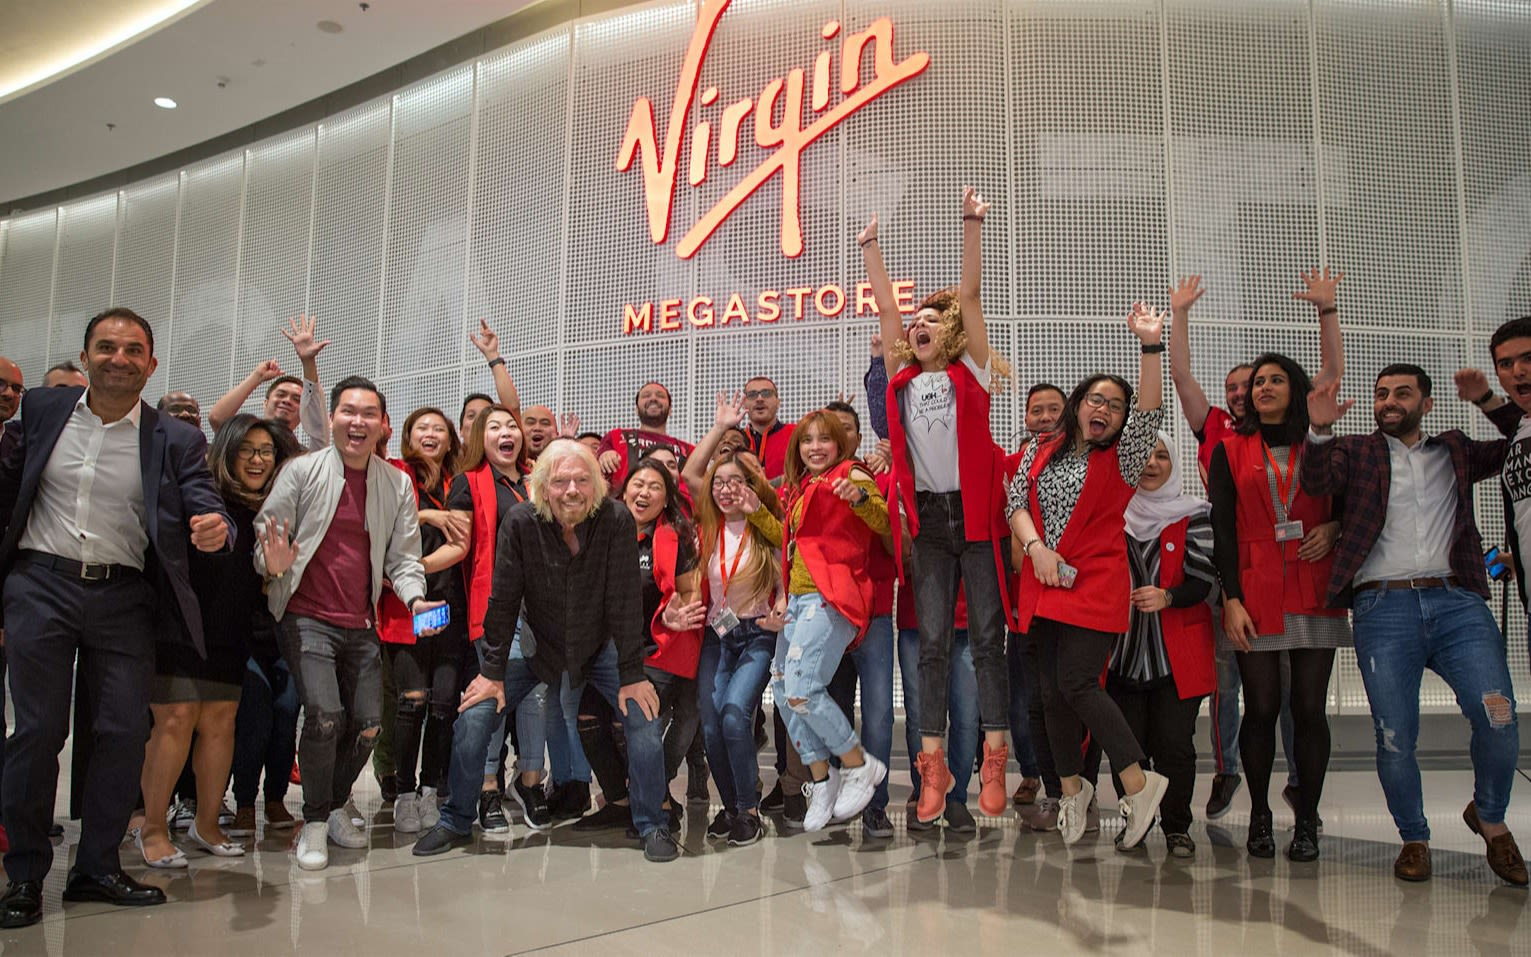 Richard Branson with Virgin Megastore employees